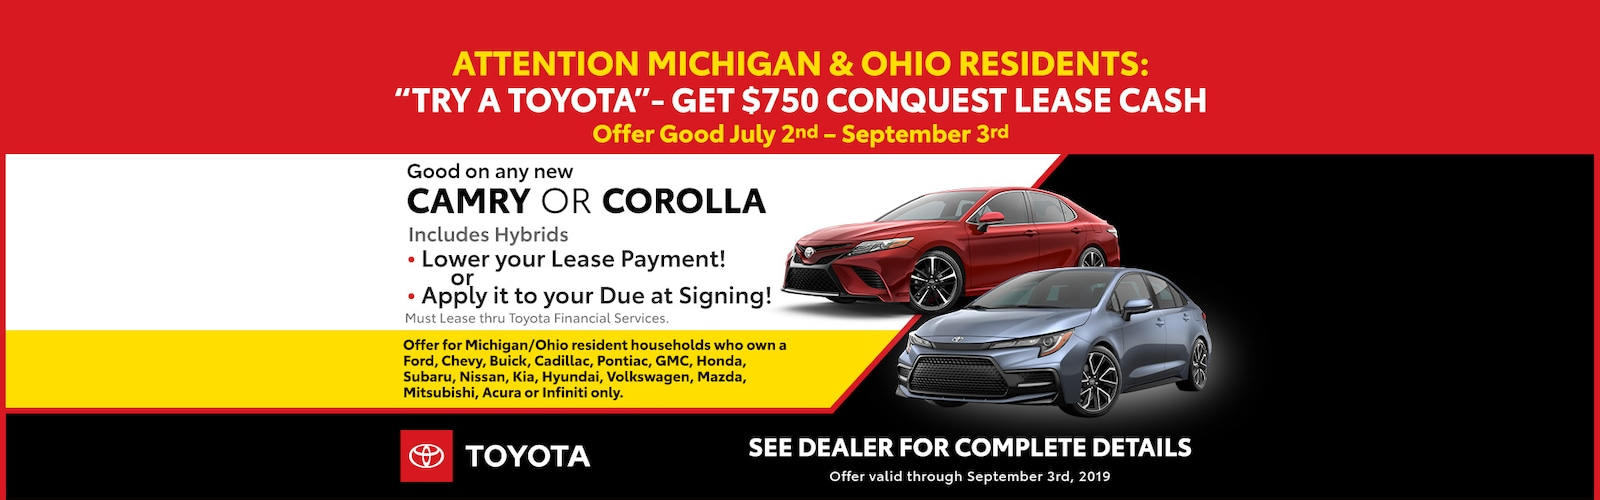 Toyota Dealers Rochester Ny >> Toyota Dealers Rochester Ny Top New Car Release Date